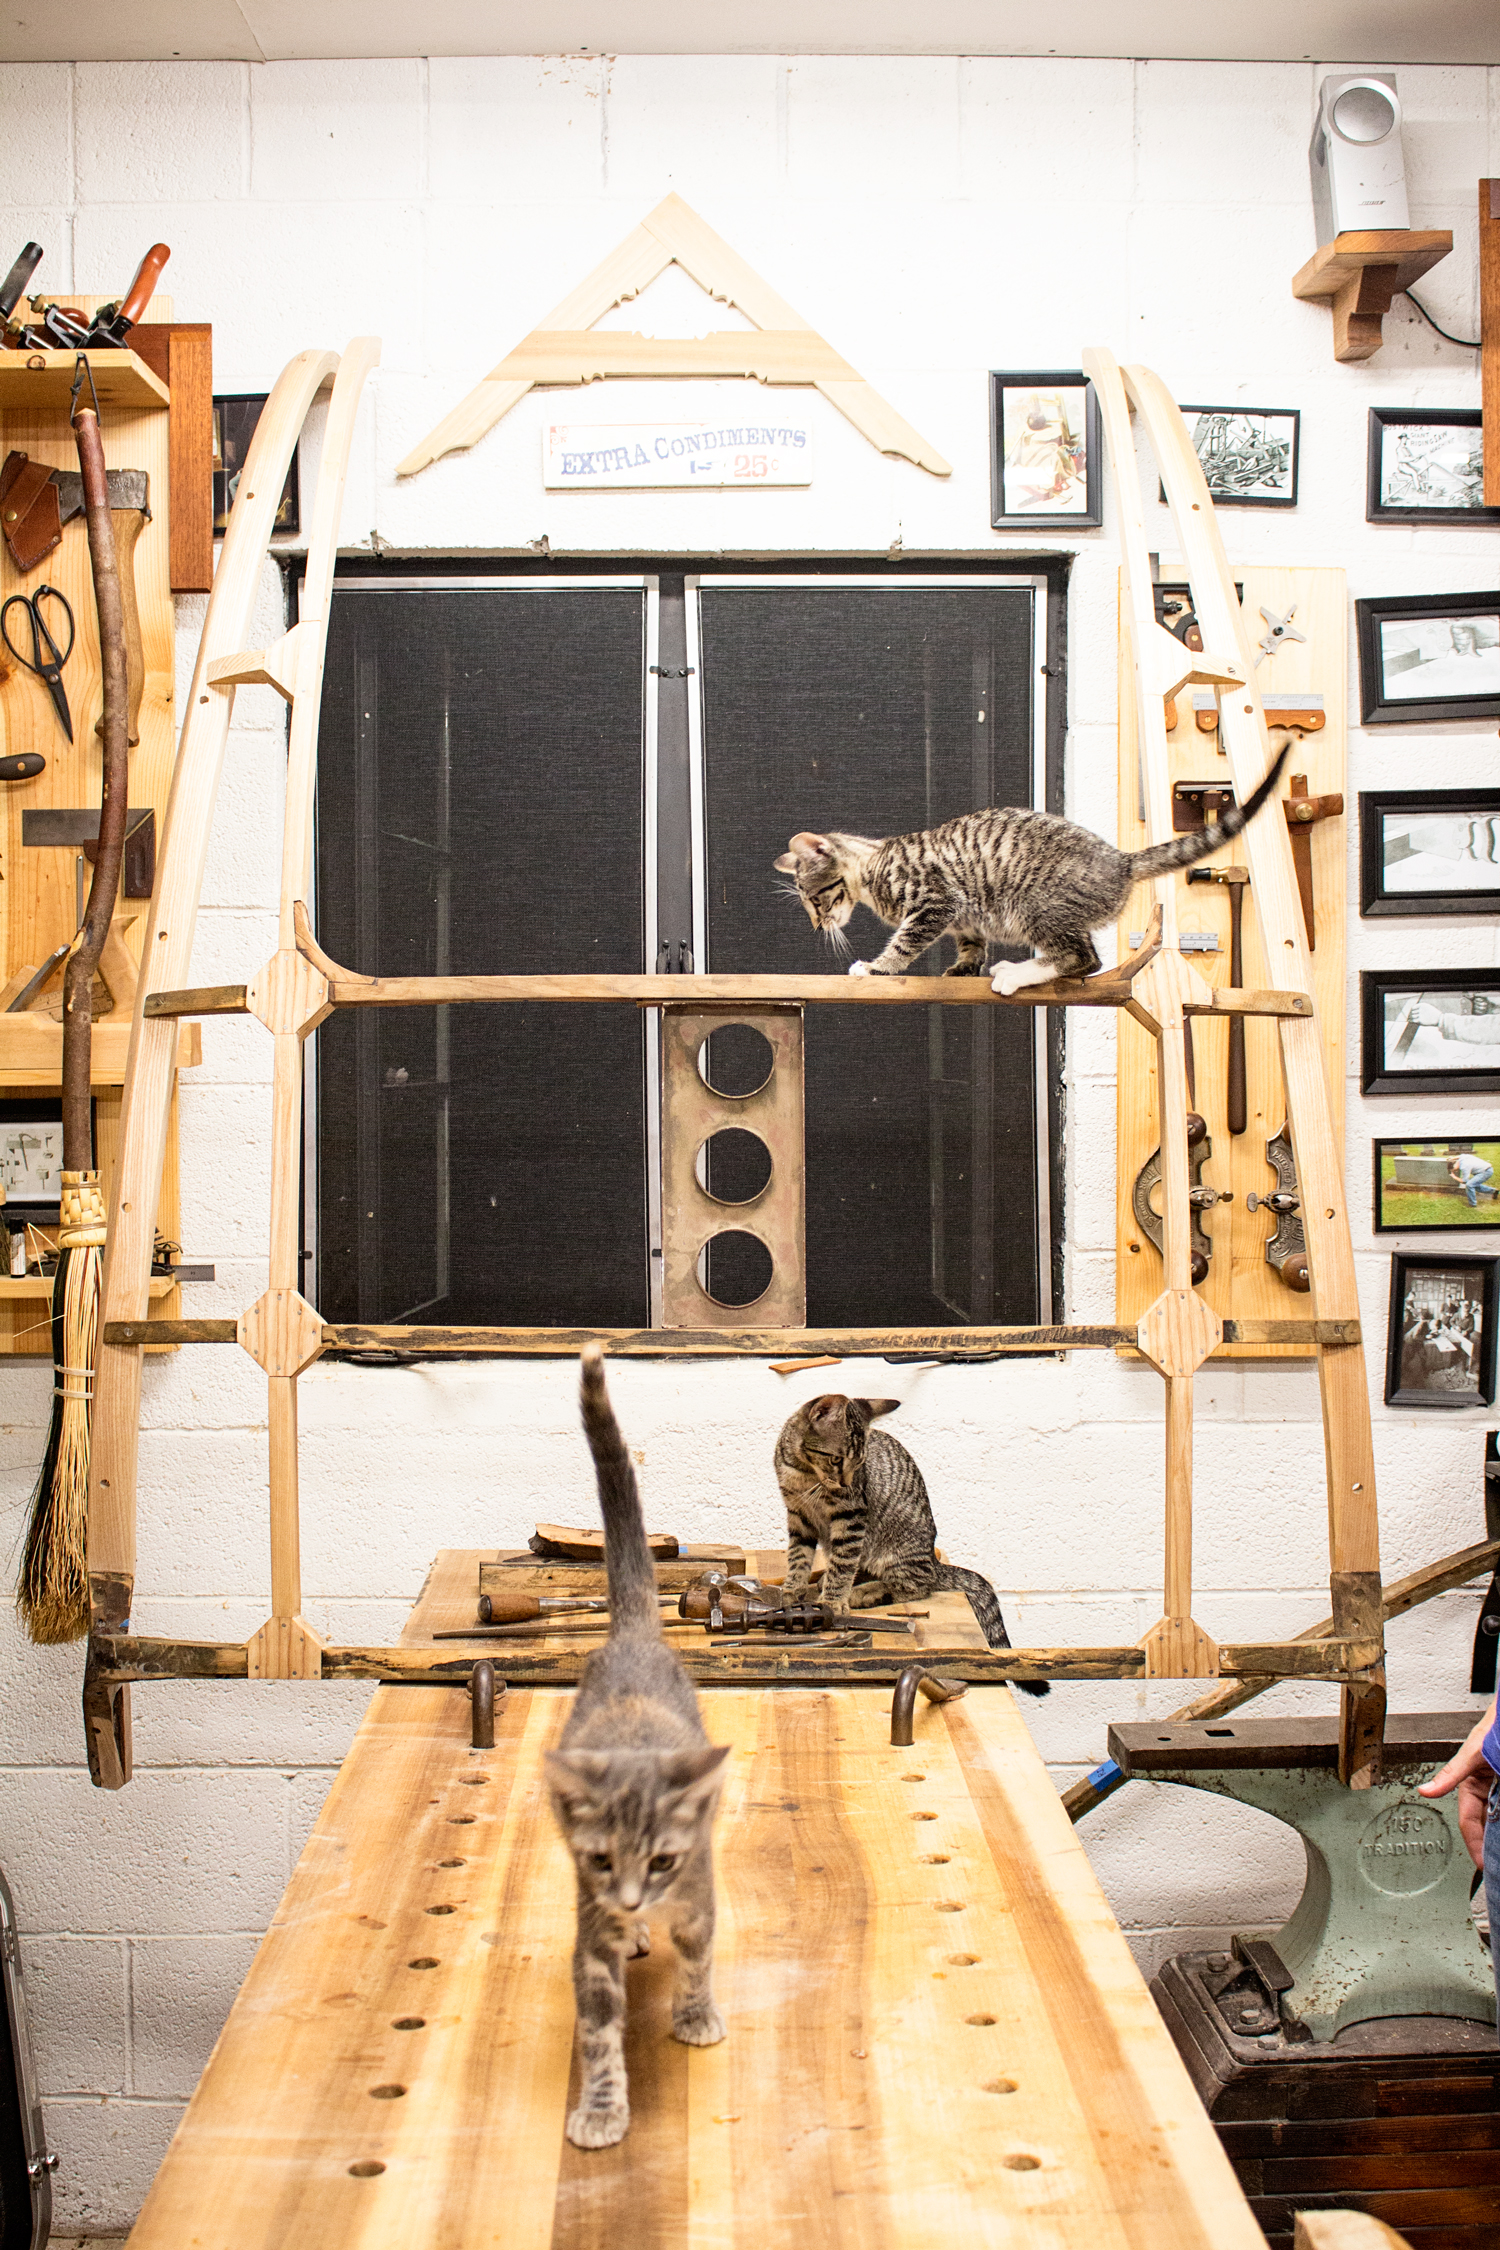 When I told the kittens that I was finishing up work on an old Jaguar, they insisted on checking it out. Pretty sure it wasn't what they were expecting!